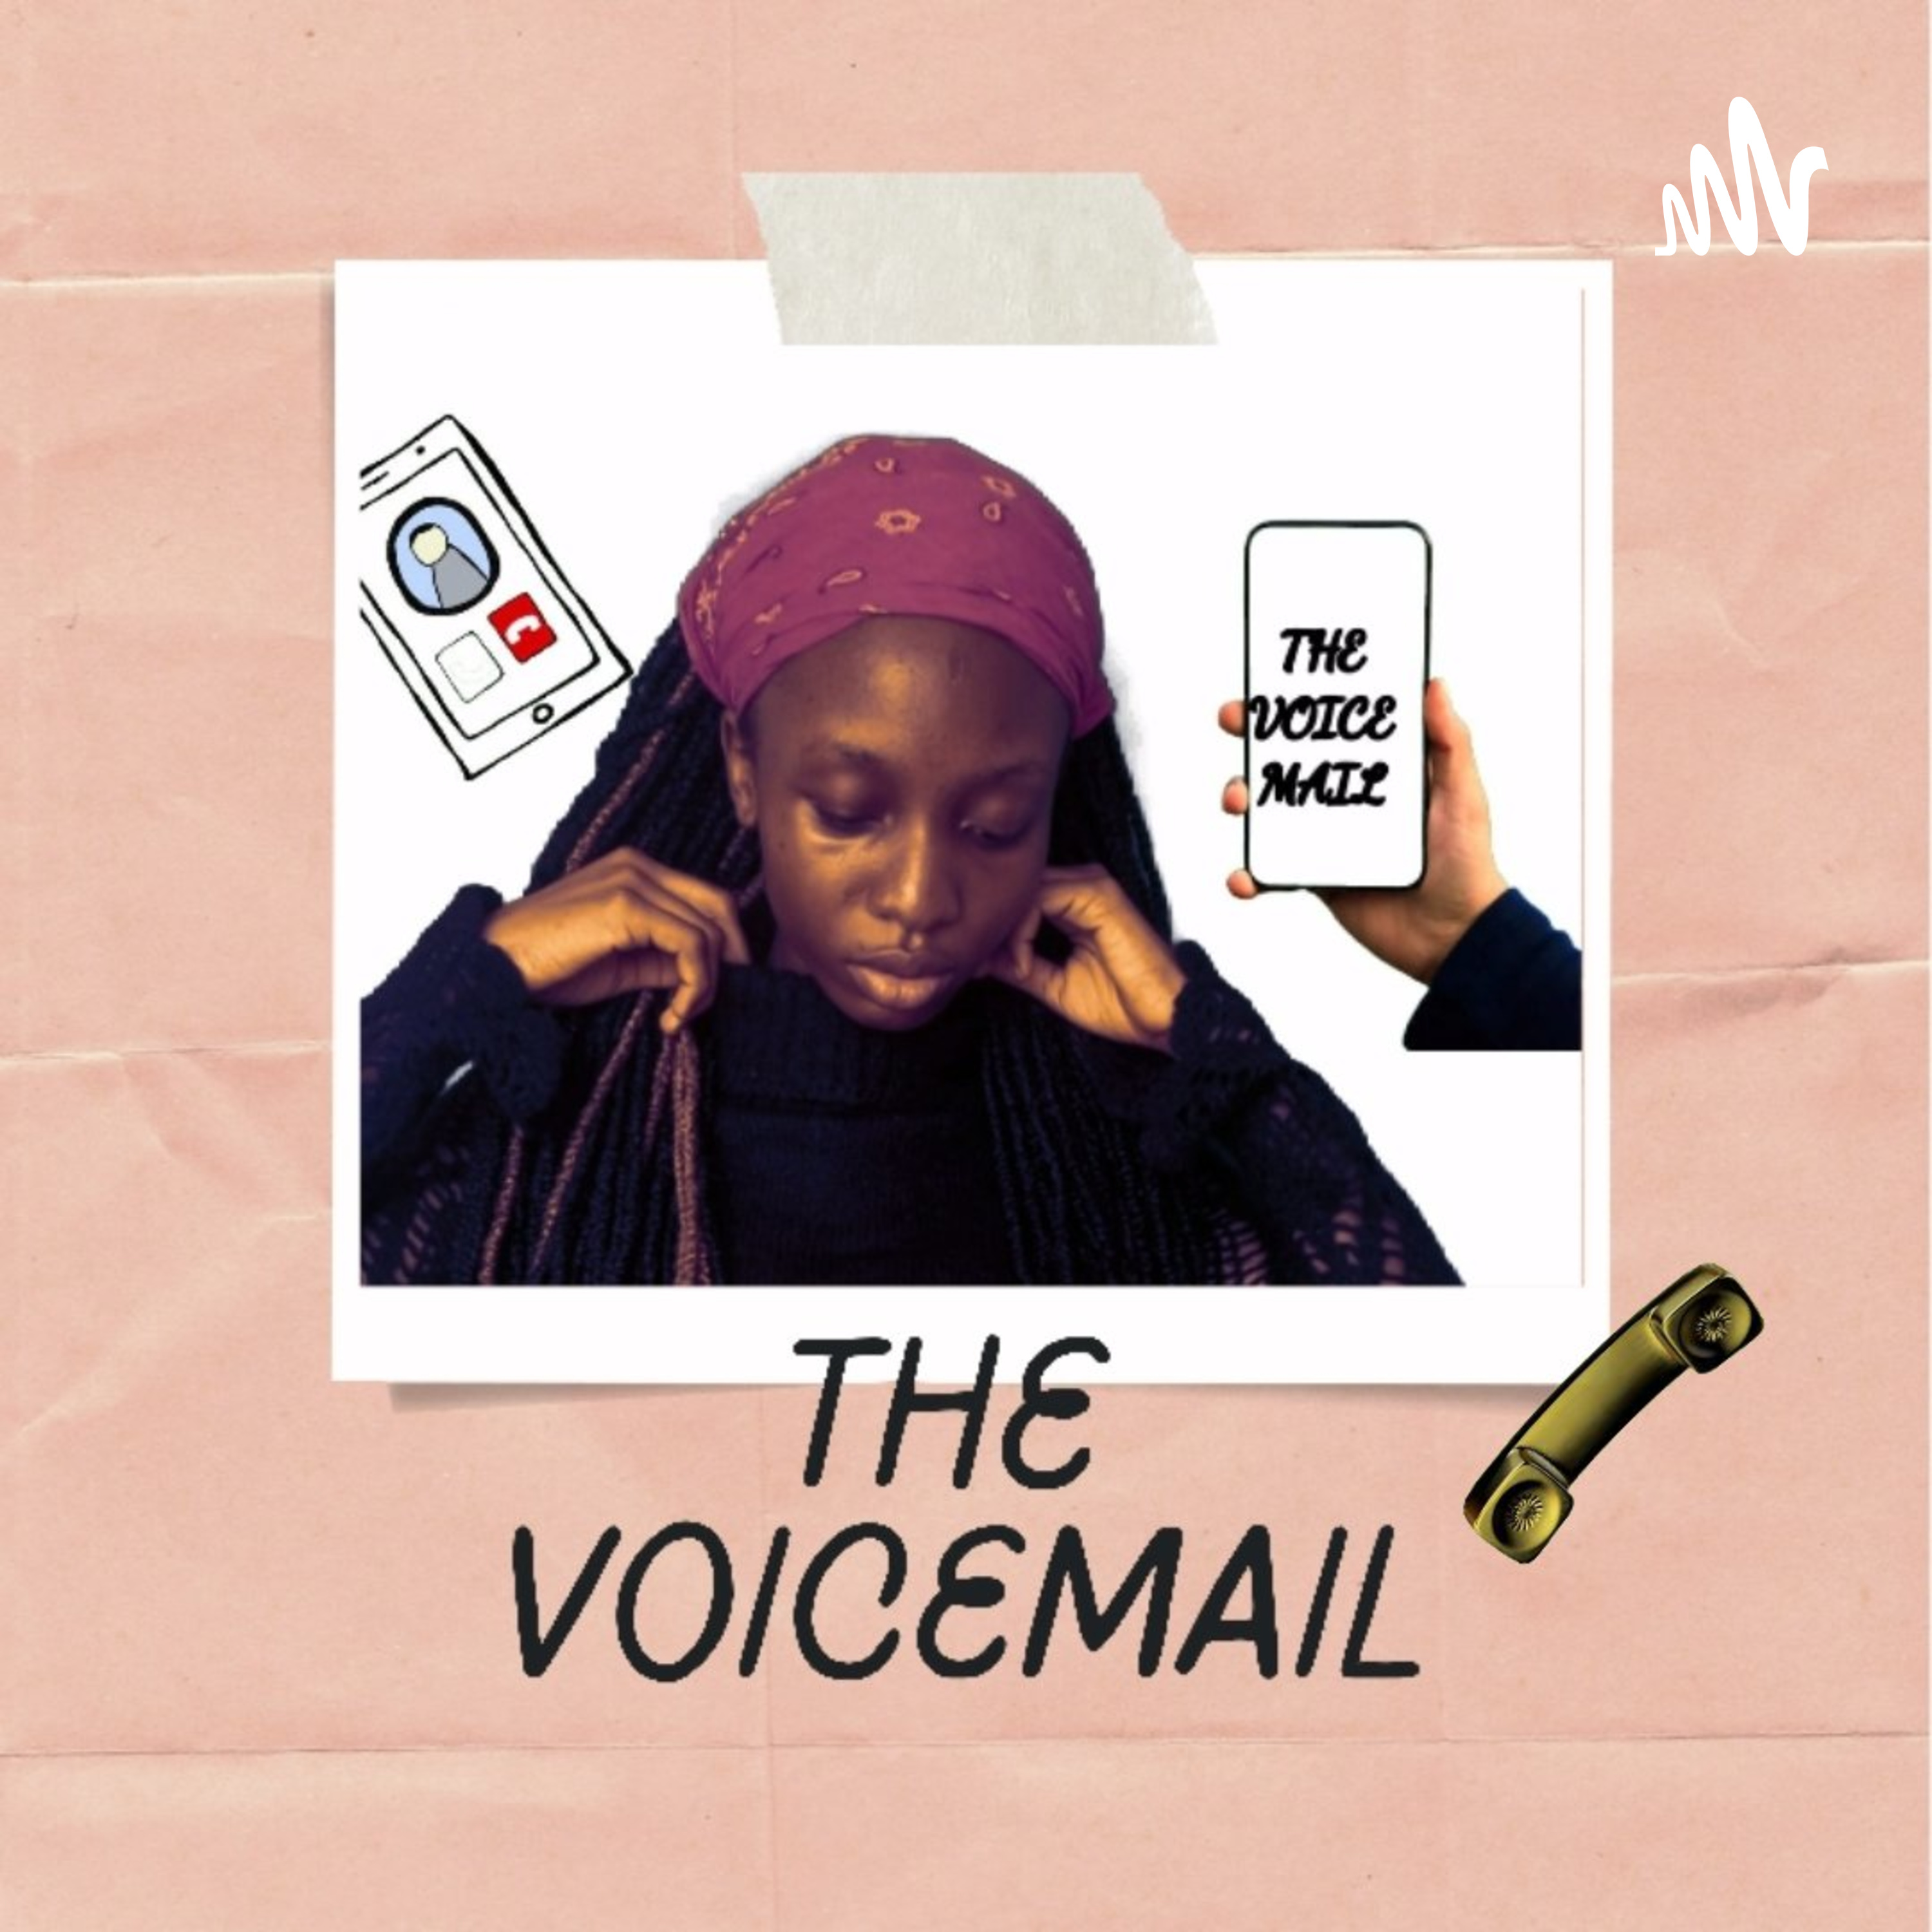 THE VOICEMAIL